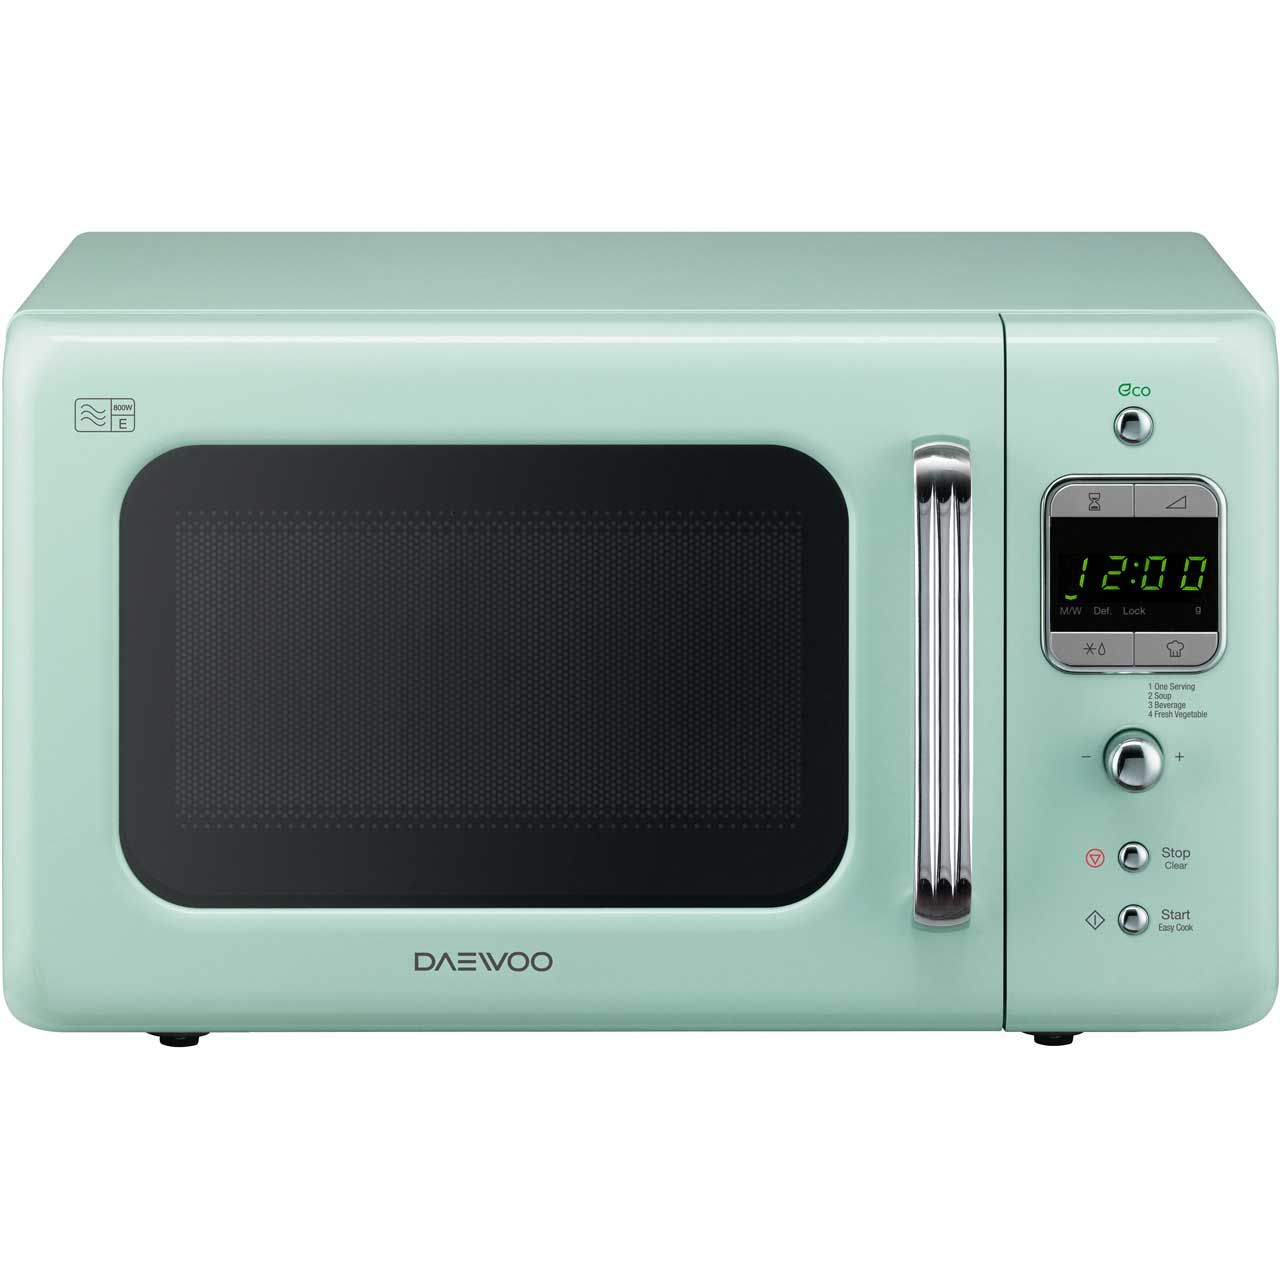 Daewoo Retro Microwave Oven Cu Ft Mint Green Is A Recently On The Market Beautiful Little With